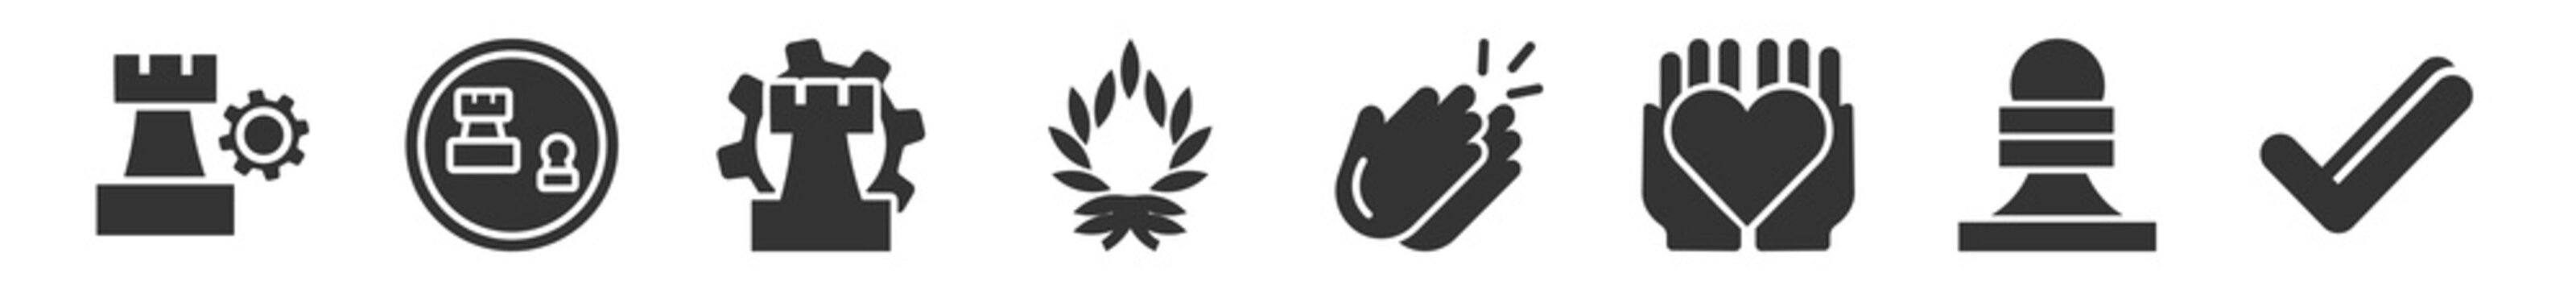 filled set of startup strategy and icons. glyph vector icons such as strategy, strategy game, management, wreath, clap, valid. vector illustration.